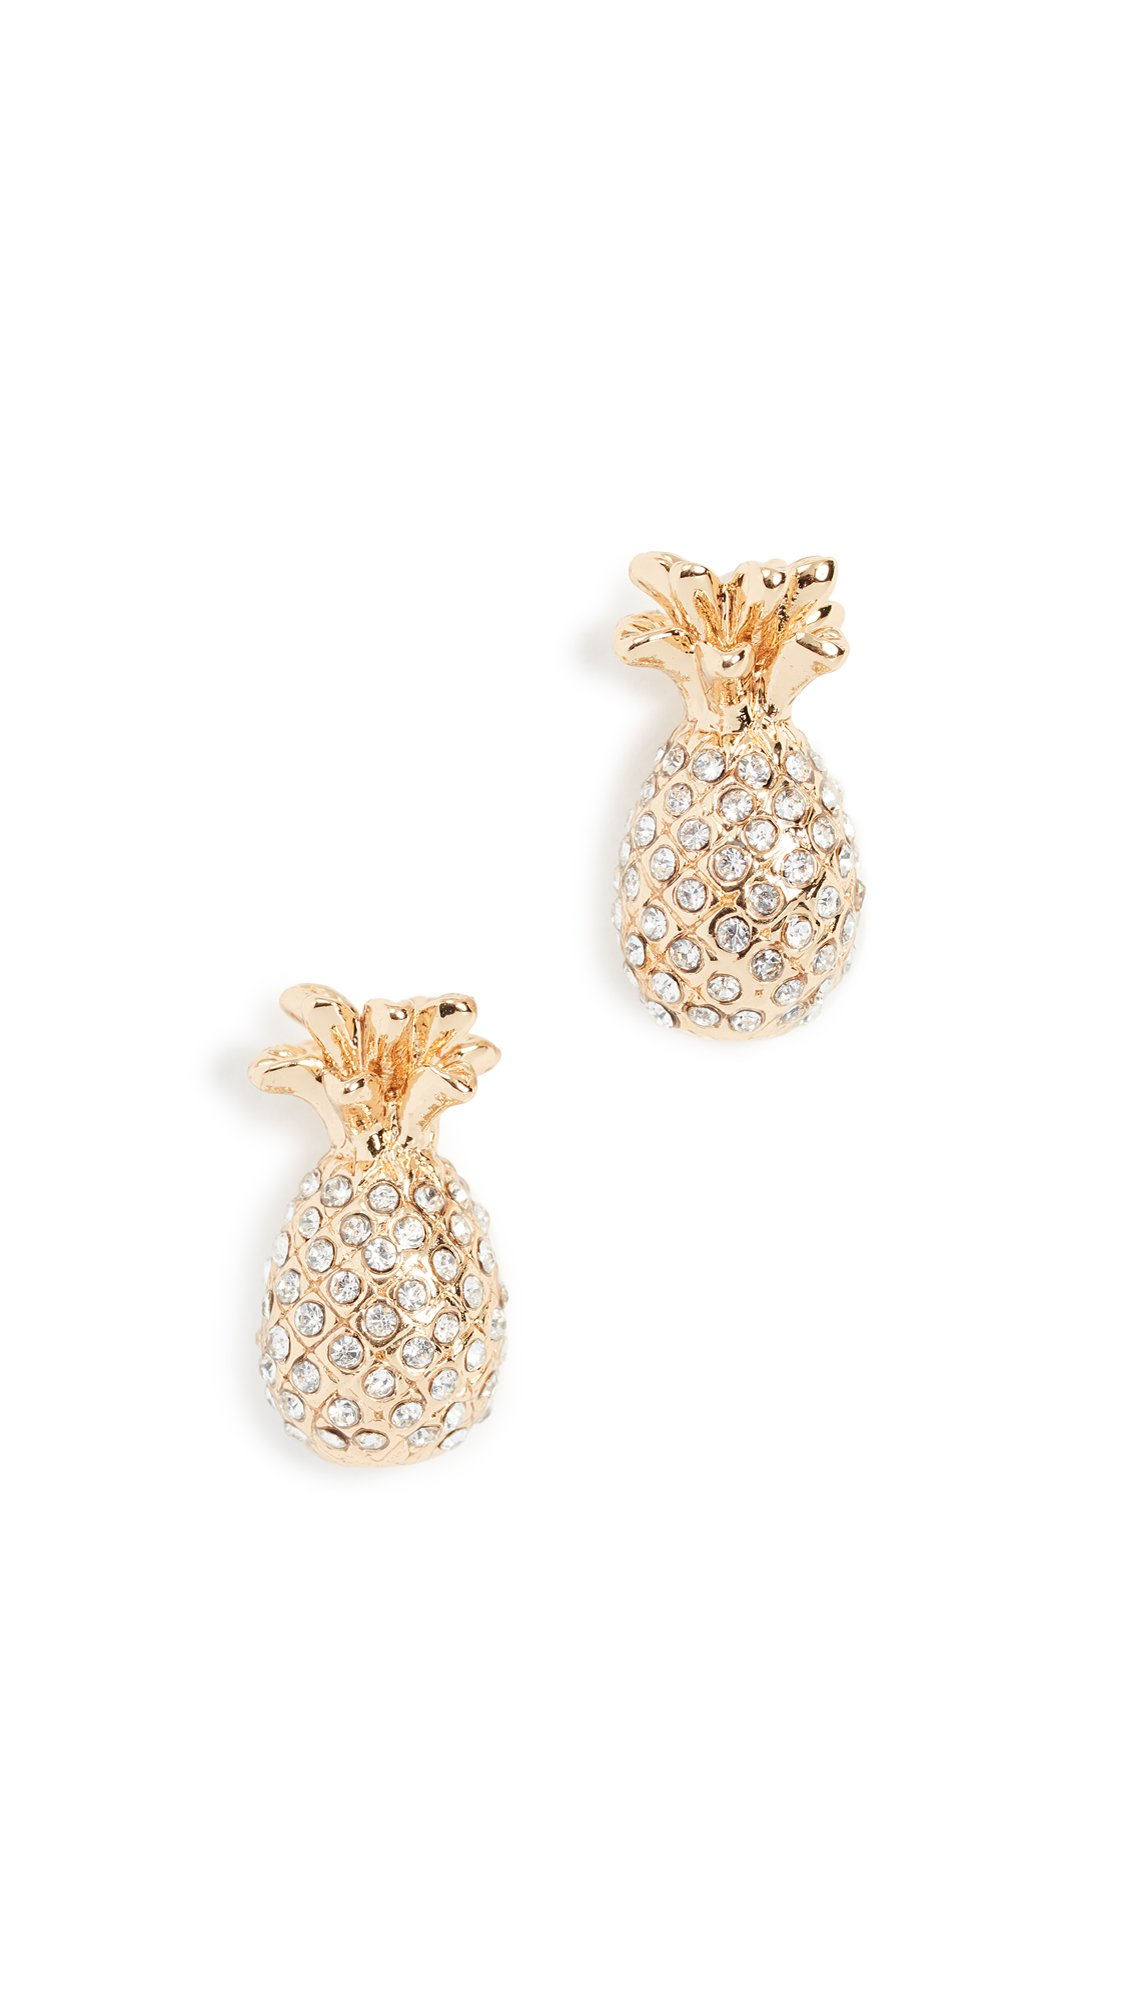 kate spade new york Womens Pave Pineapple Mini Stud Earrings, Clear/Gold